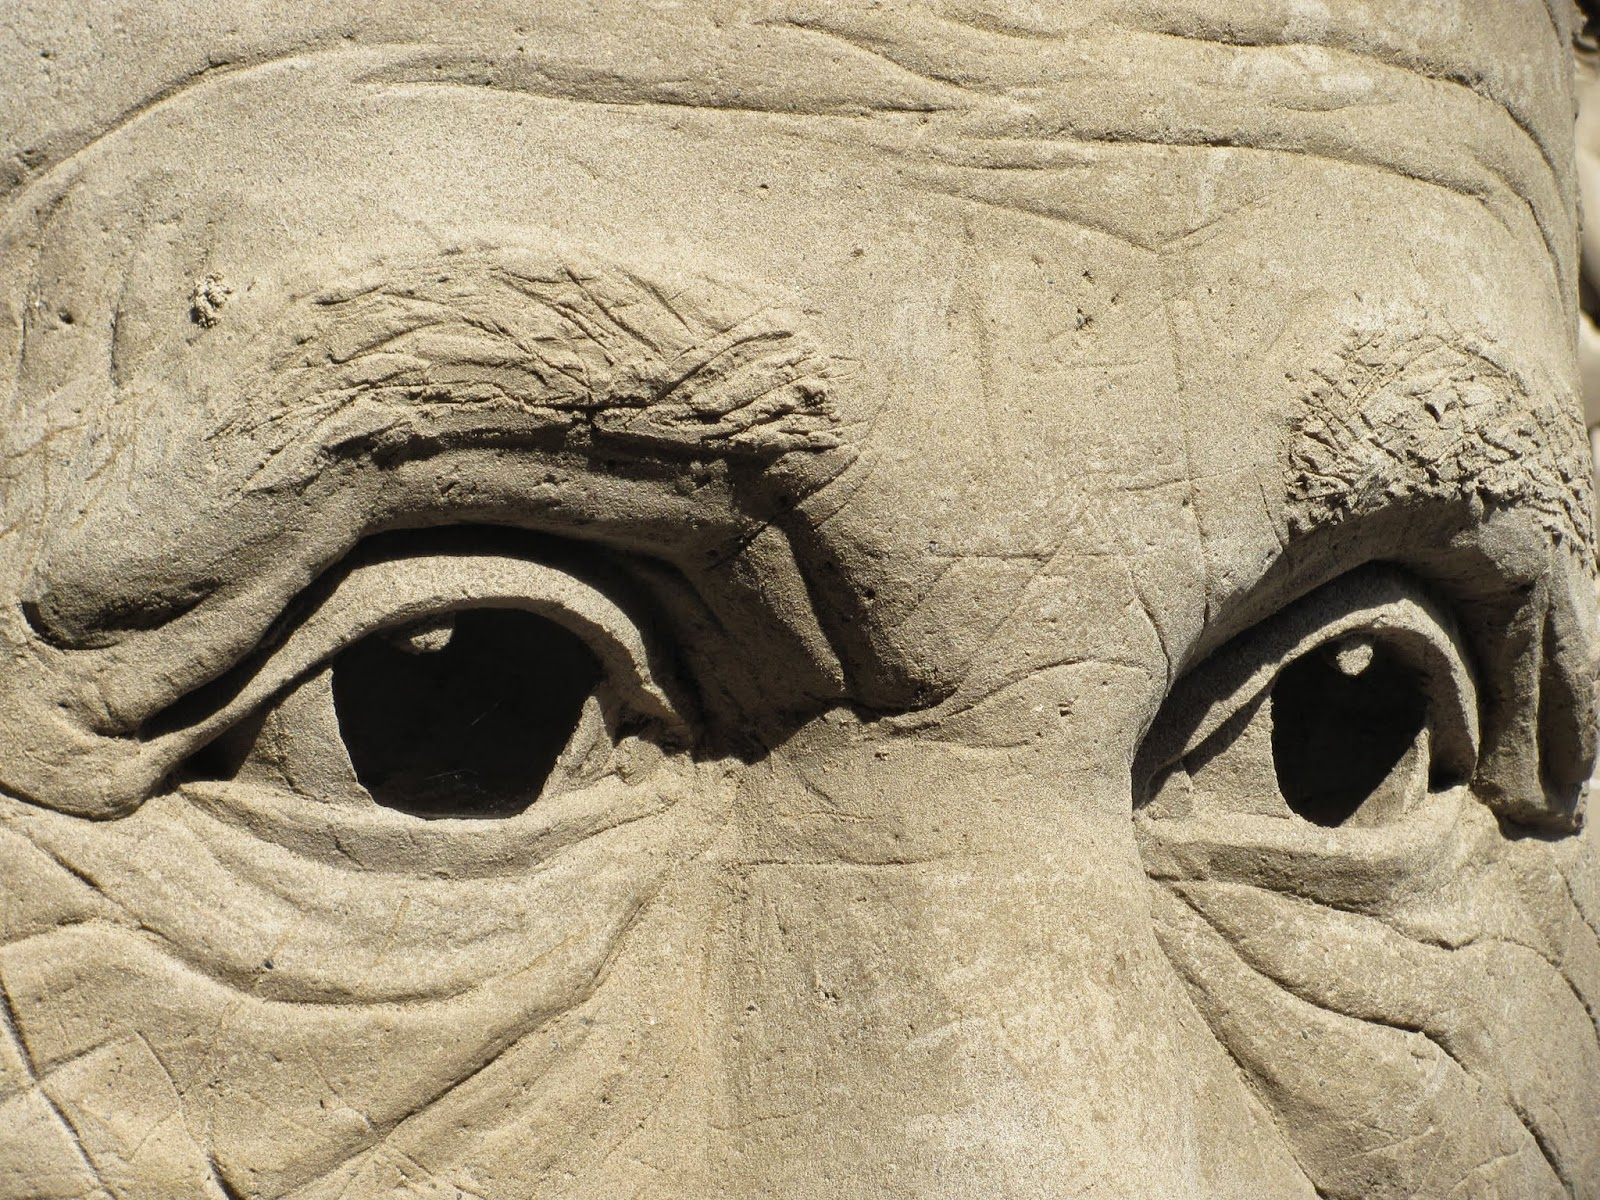 Detailed Eyes Closeup Dublin Castle Sand Sculptures 2014